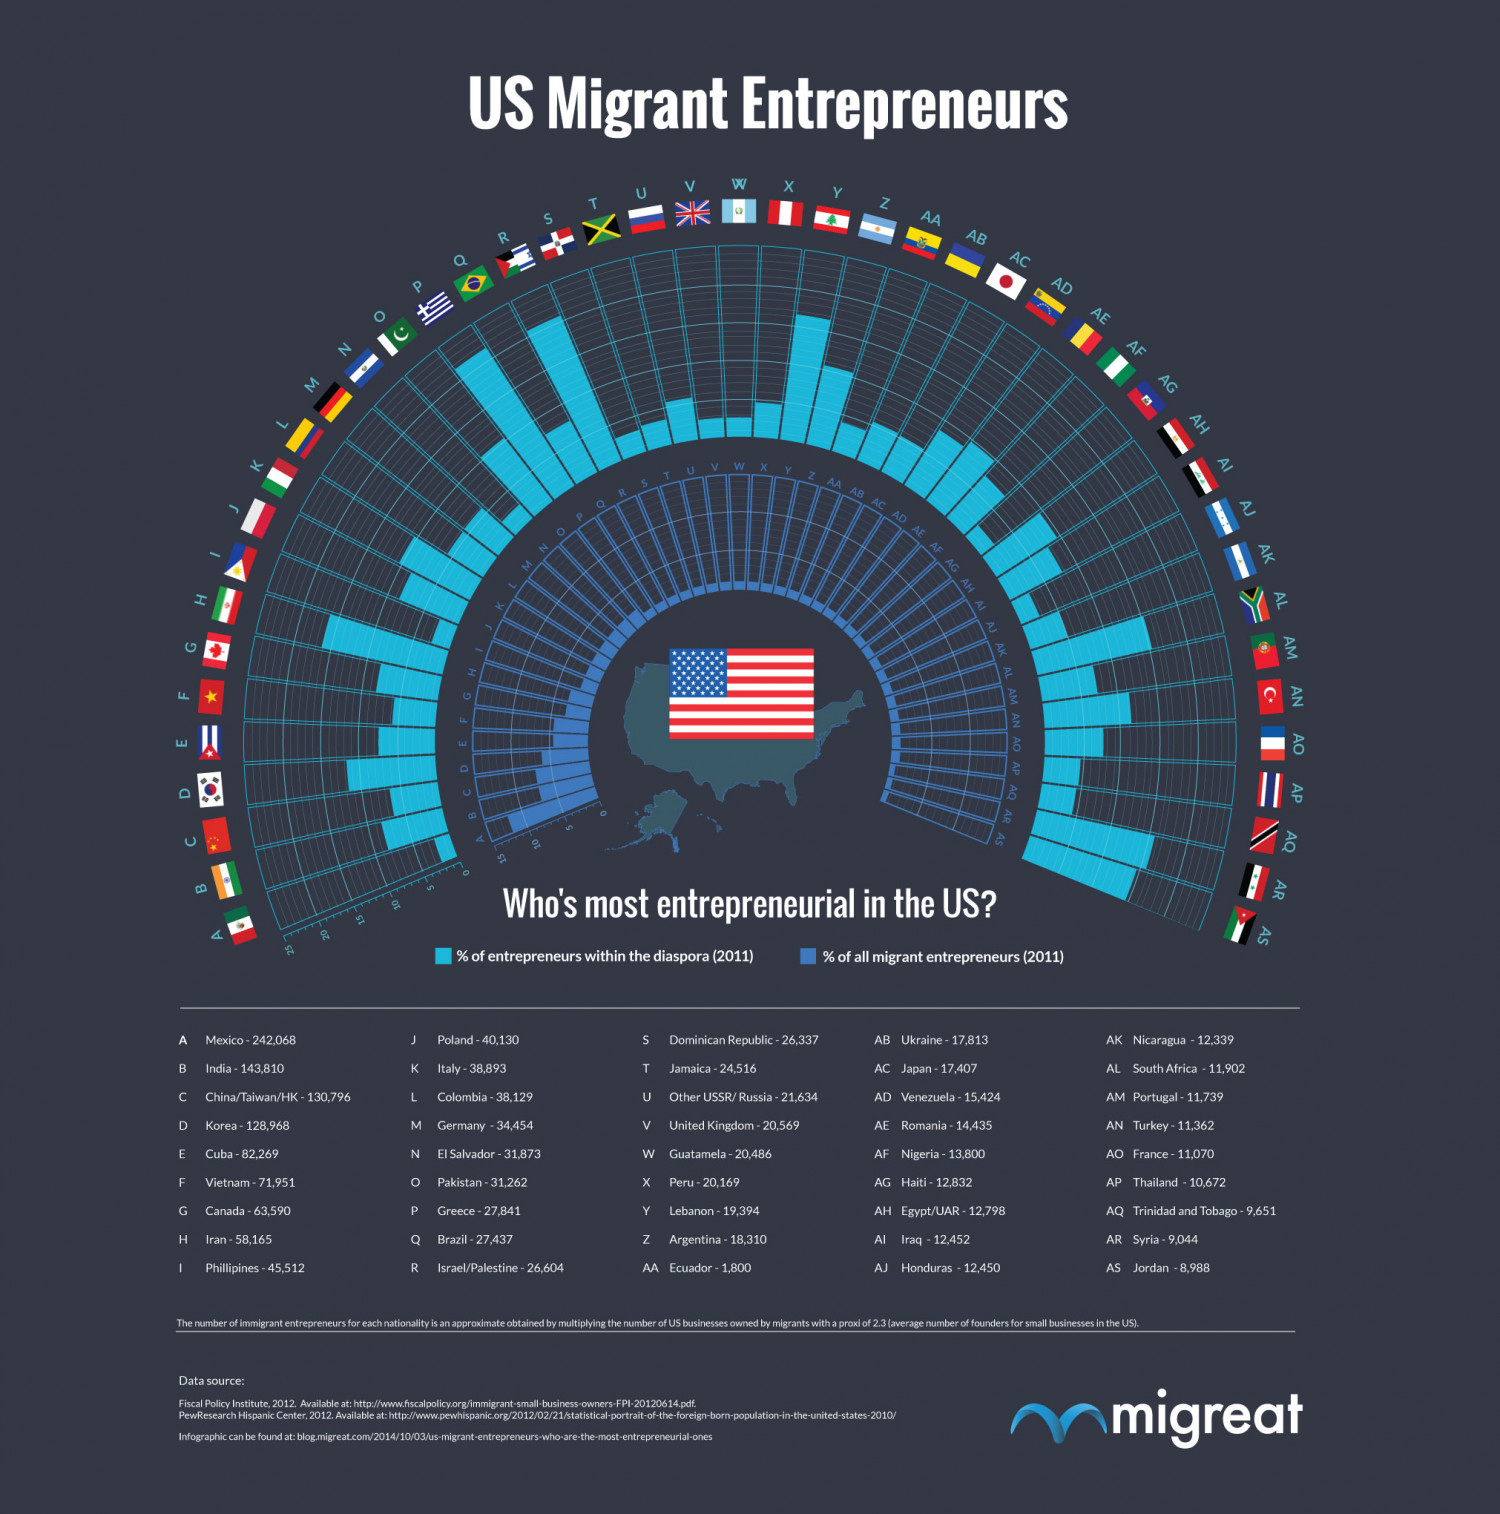 US MIGRANT ENTREPRENEURS: WHO'S WHO? Infographic